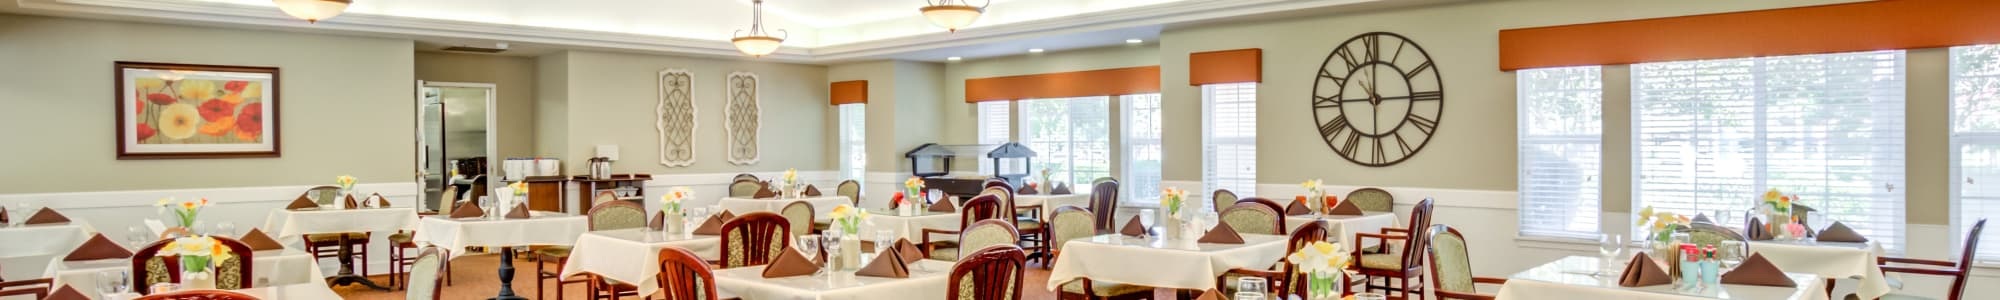 Senior living's newsletter at Cottonwood Court in Fresno, California